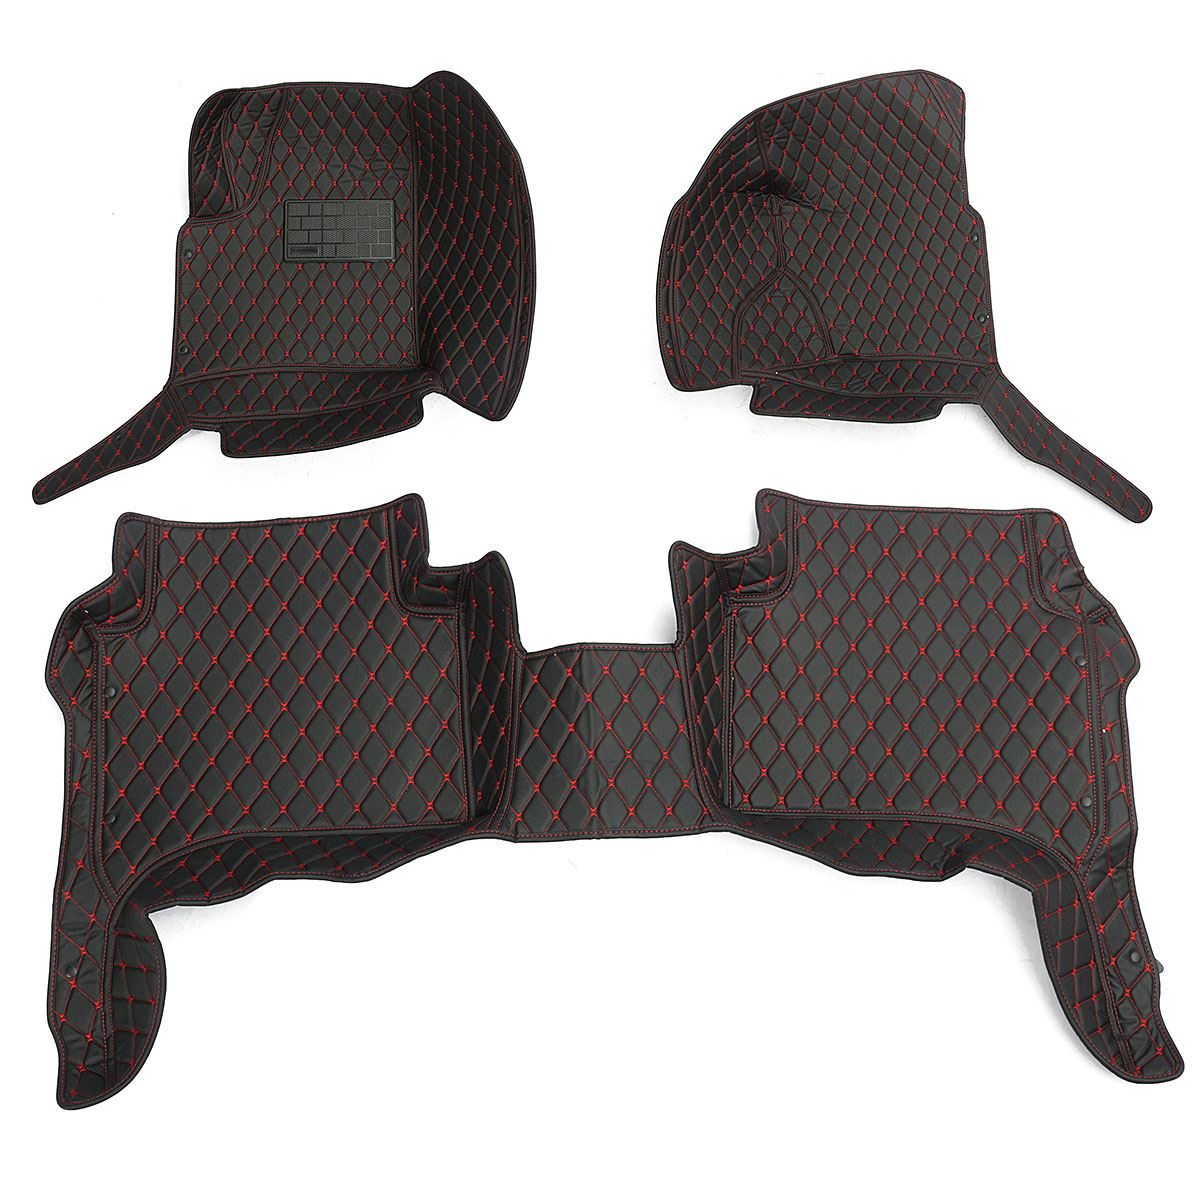 Floor mats with cushion - Black Red Fully Enclosed Car Floor Mat Cushion For Porsche Cayenne 2006 2010